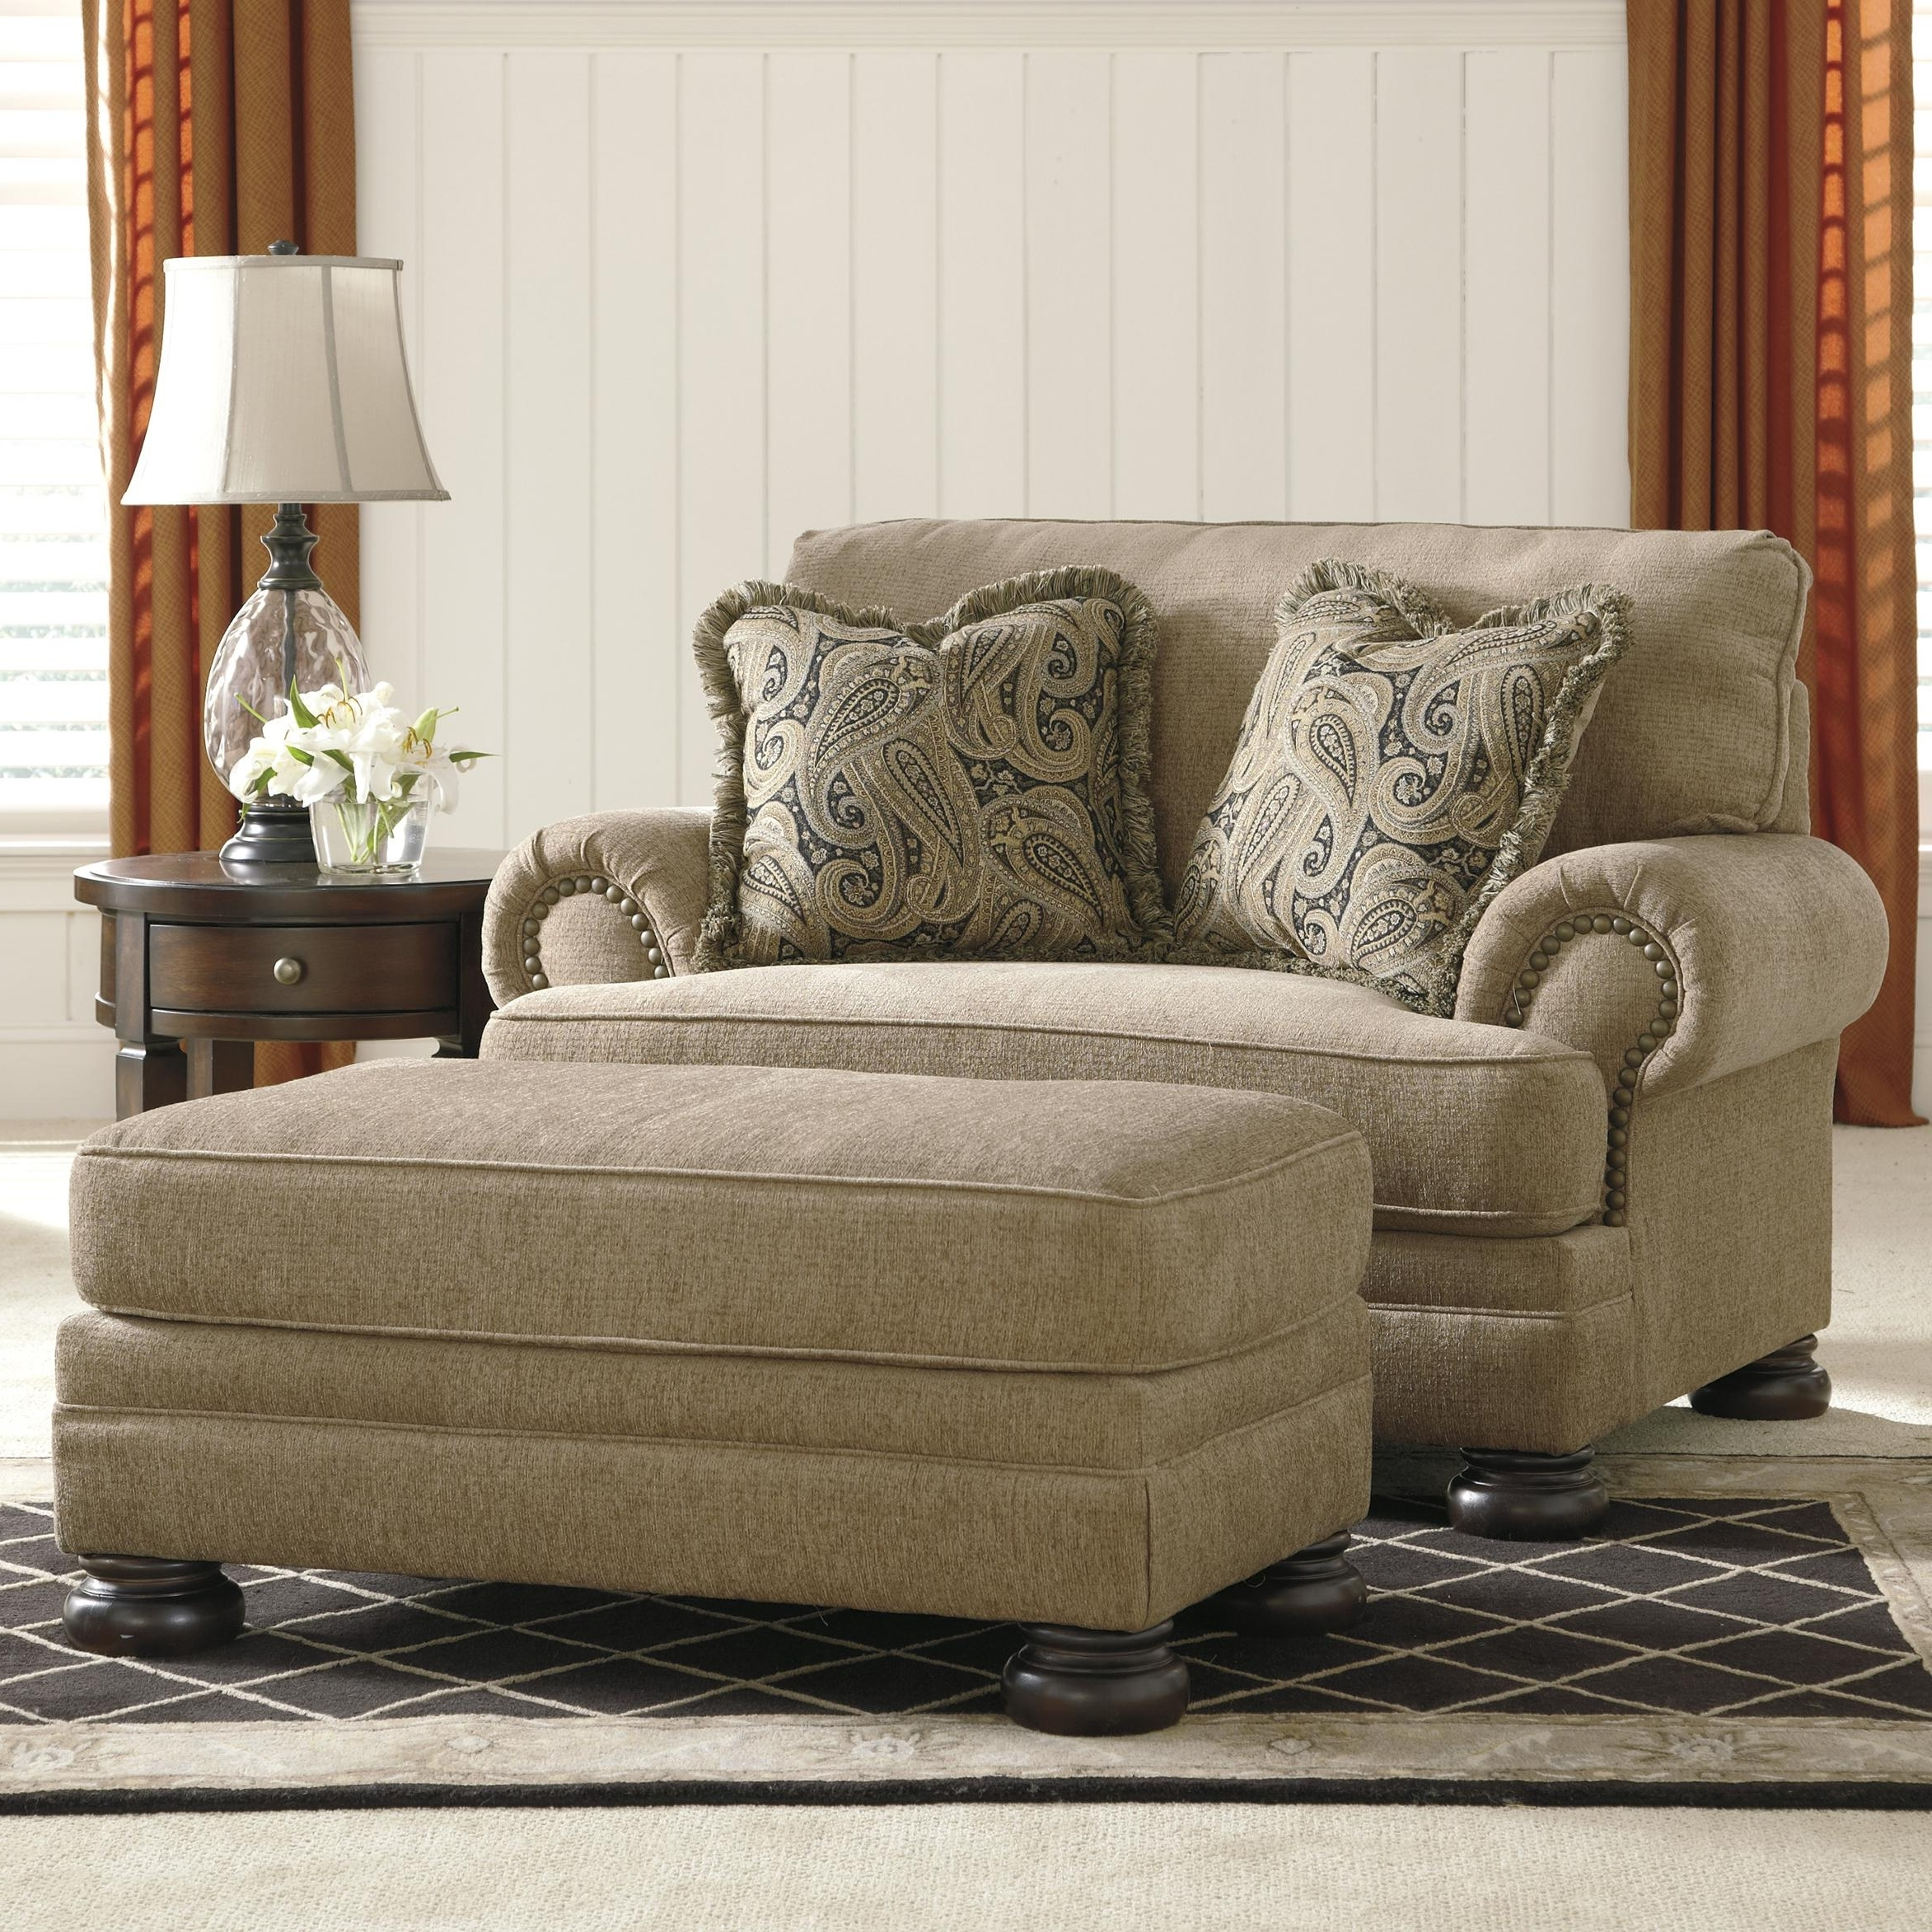 Oversized Sofa Chairs Within Widely Used Inspirational Oversized Sofa Chair (37 Photos) (View 3 of 20)